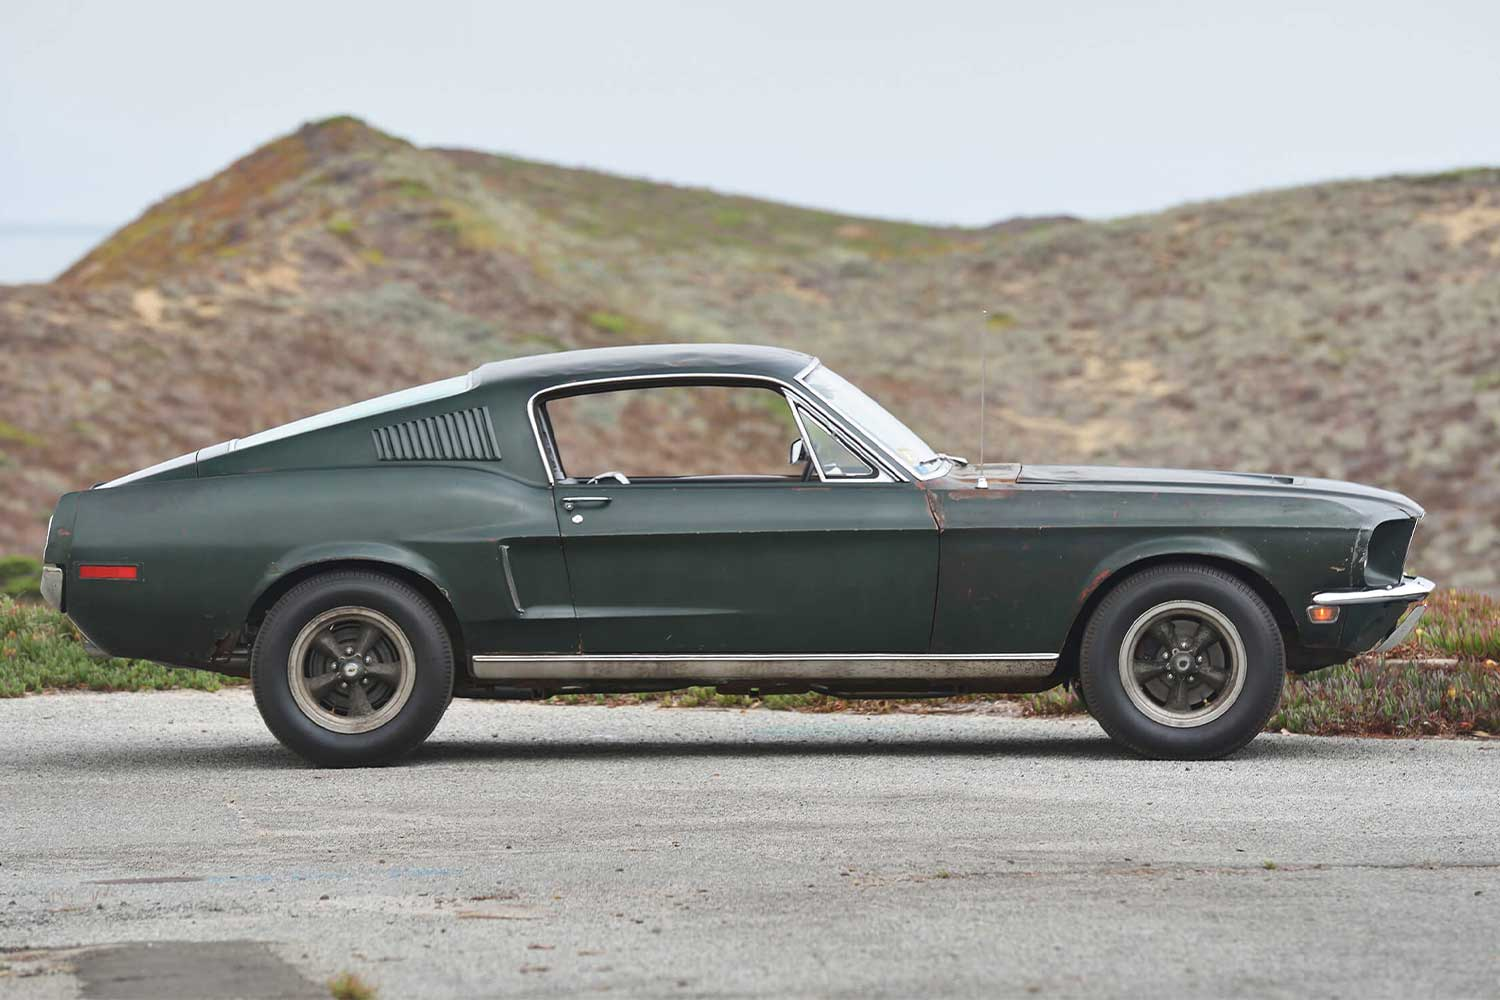 The McQueen Bullitt Mustang GT 390 Fastback was sold for $3,740,000 at Mecum Kissimmee 2020 and became the most valuable Ford Mustang in the world (Image: bullitt.mecum.com)